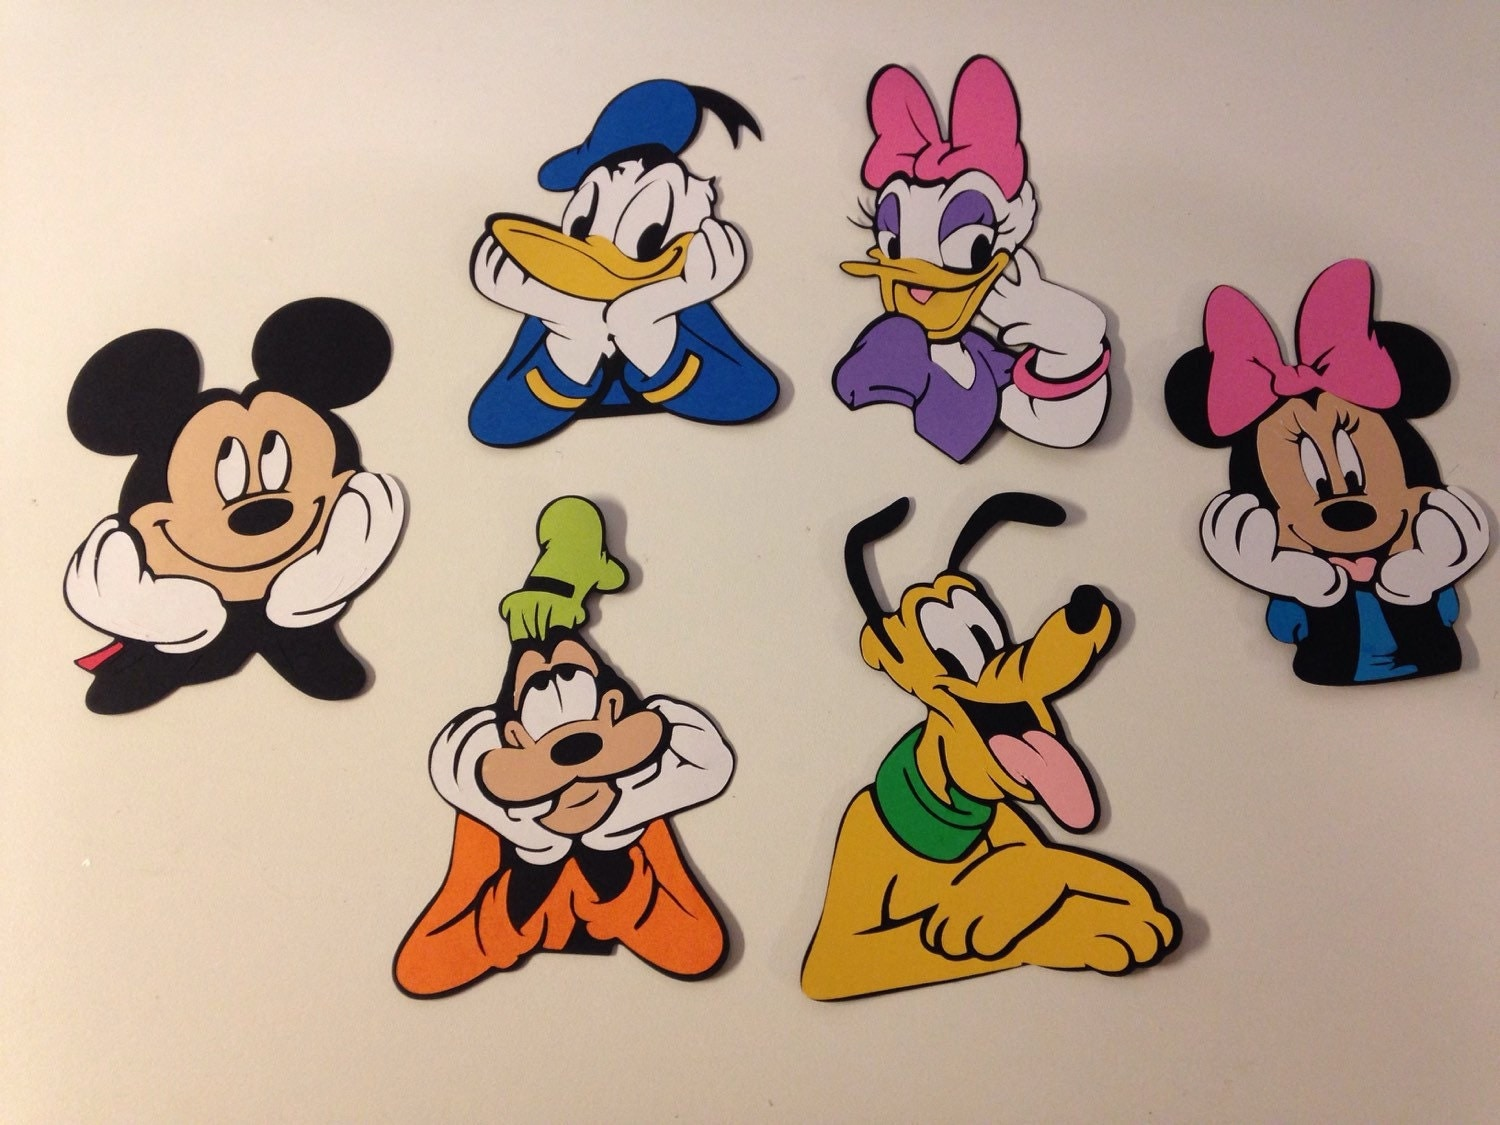 Set of 6 Disney Mickey Mouse character die cut faces